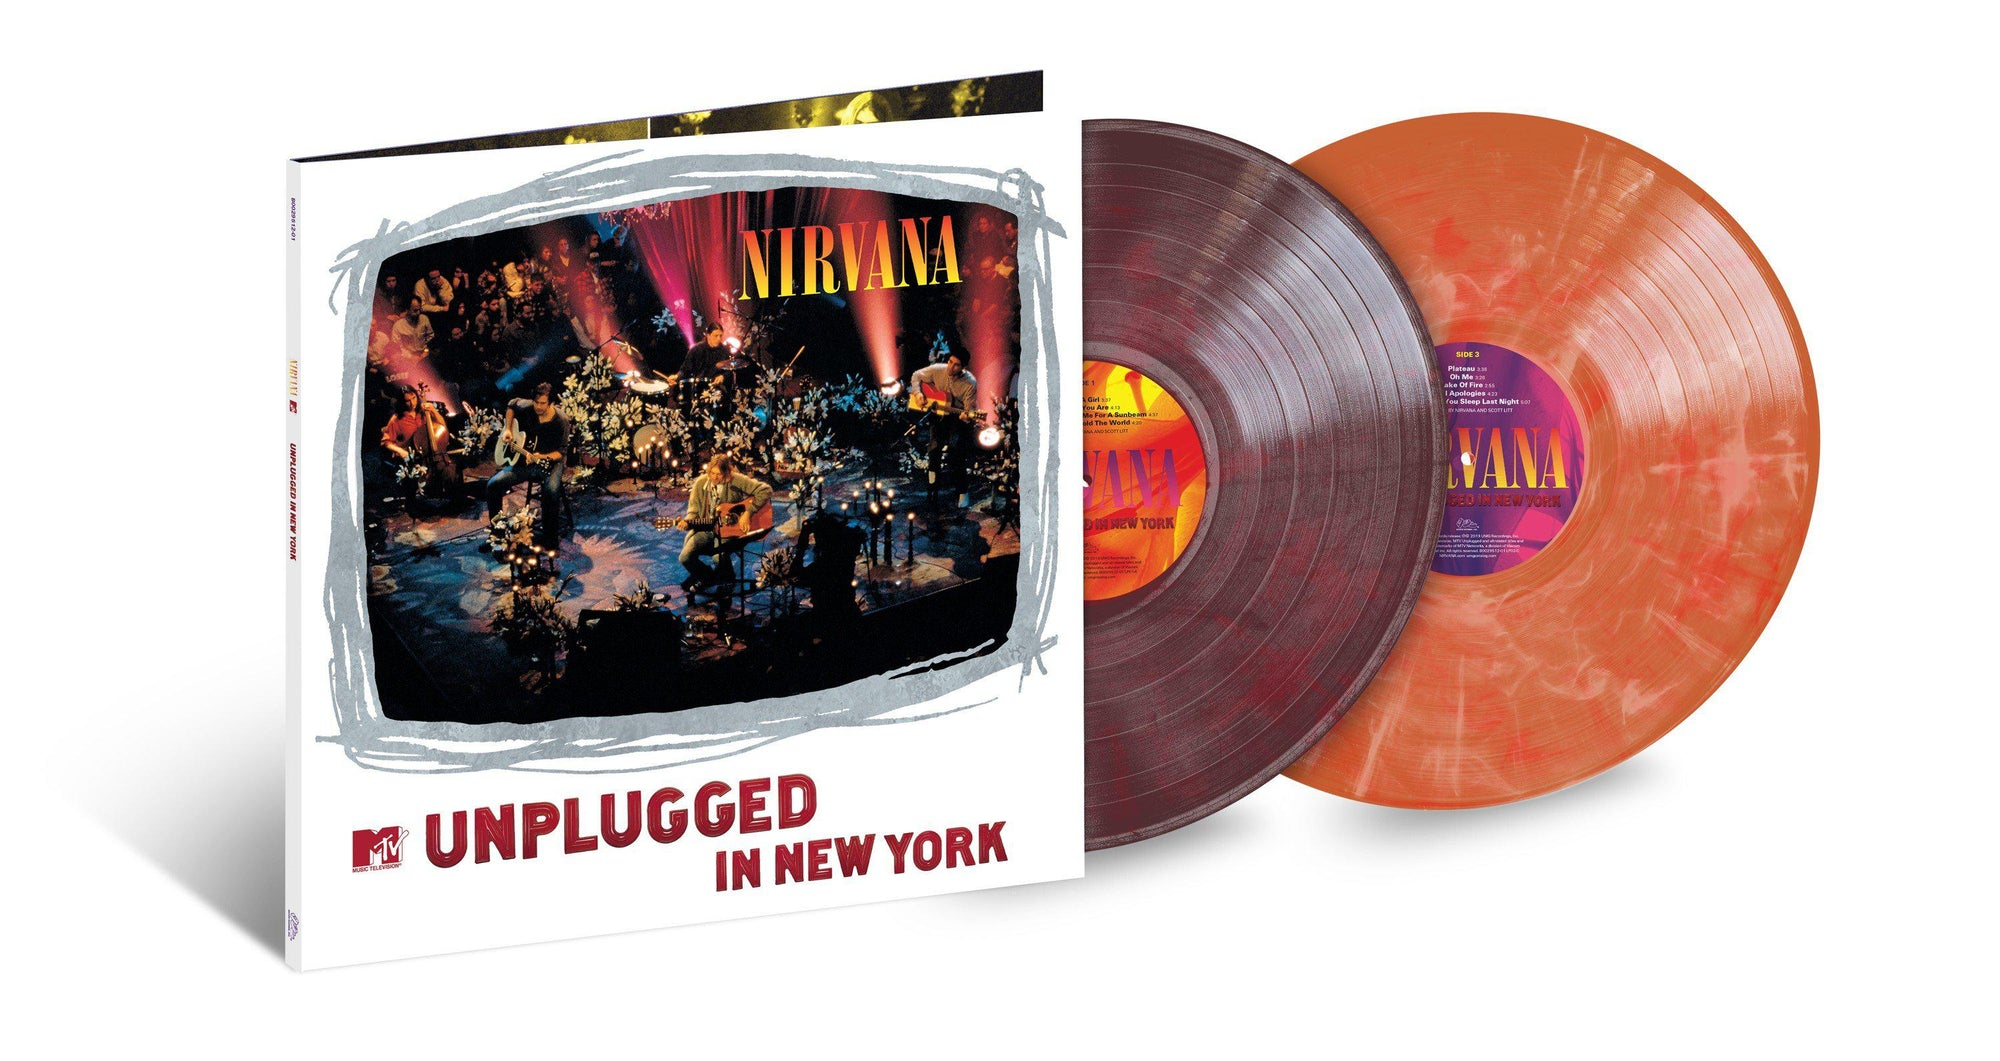 Unplugged Limited Edition Colored 2xLP